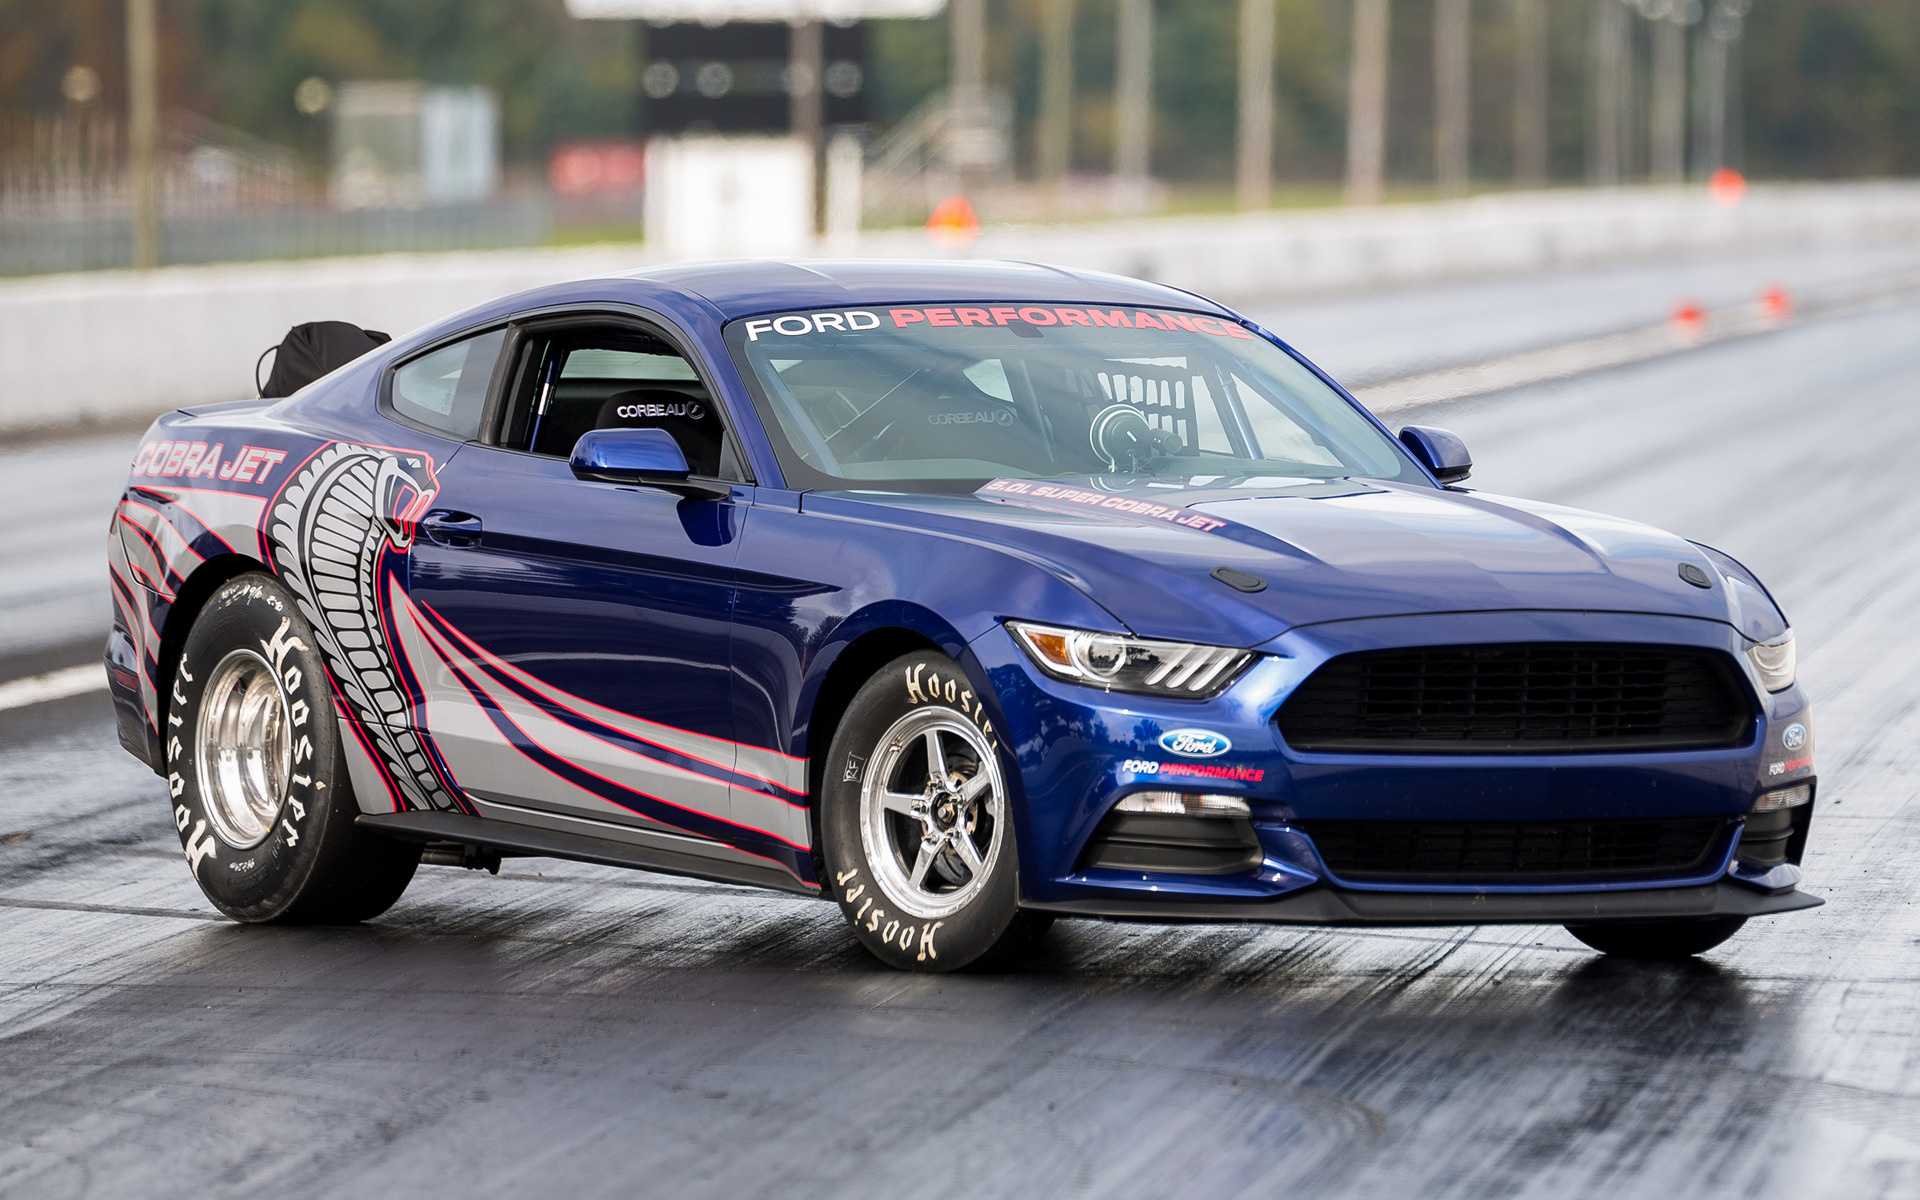 Drag Racing Cars For Sale In Dallas Texas